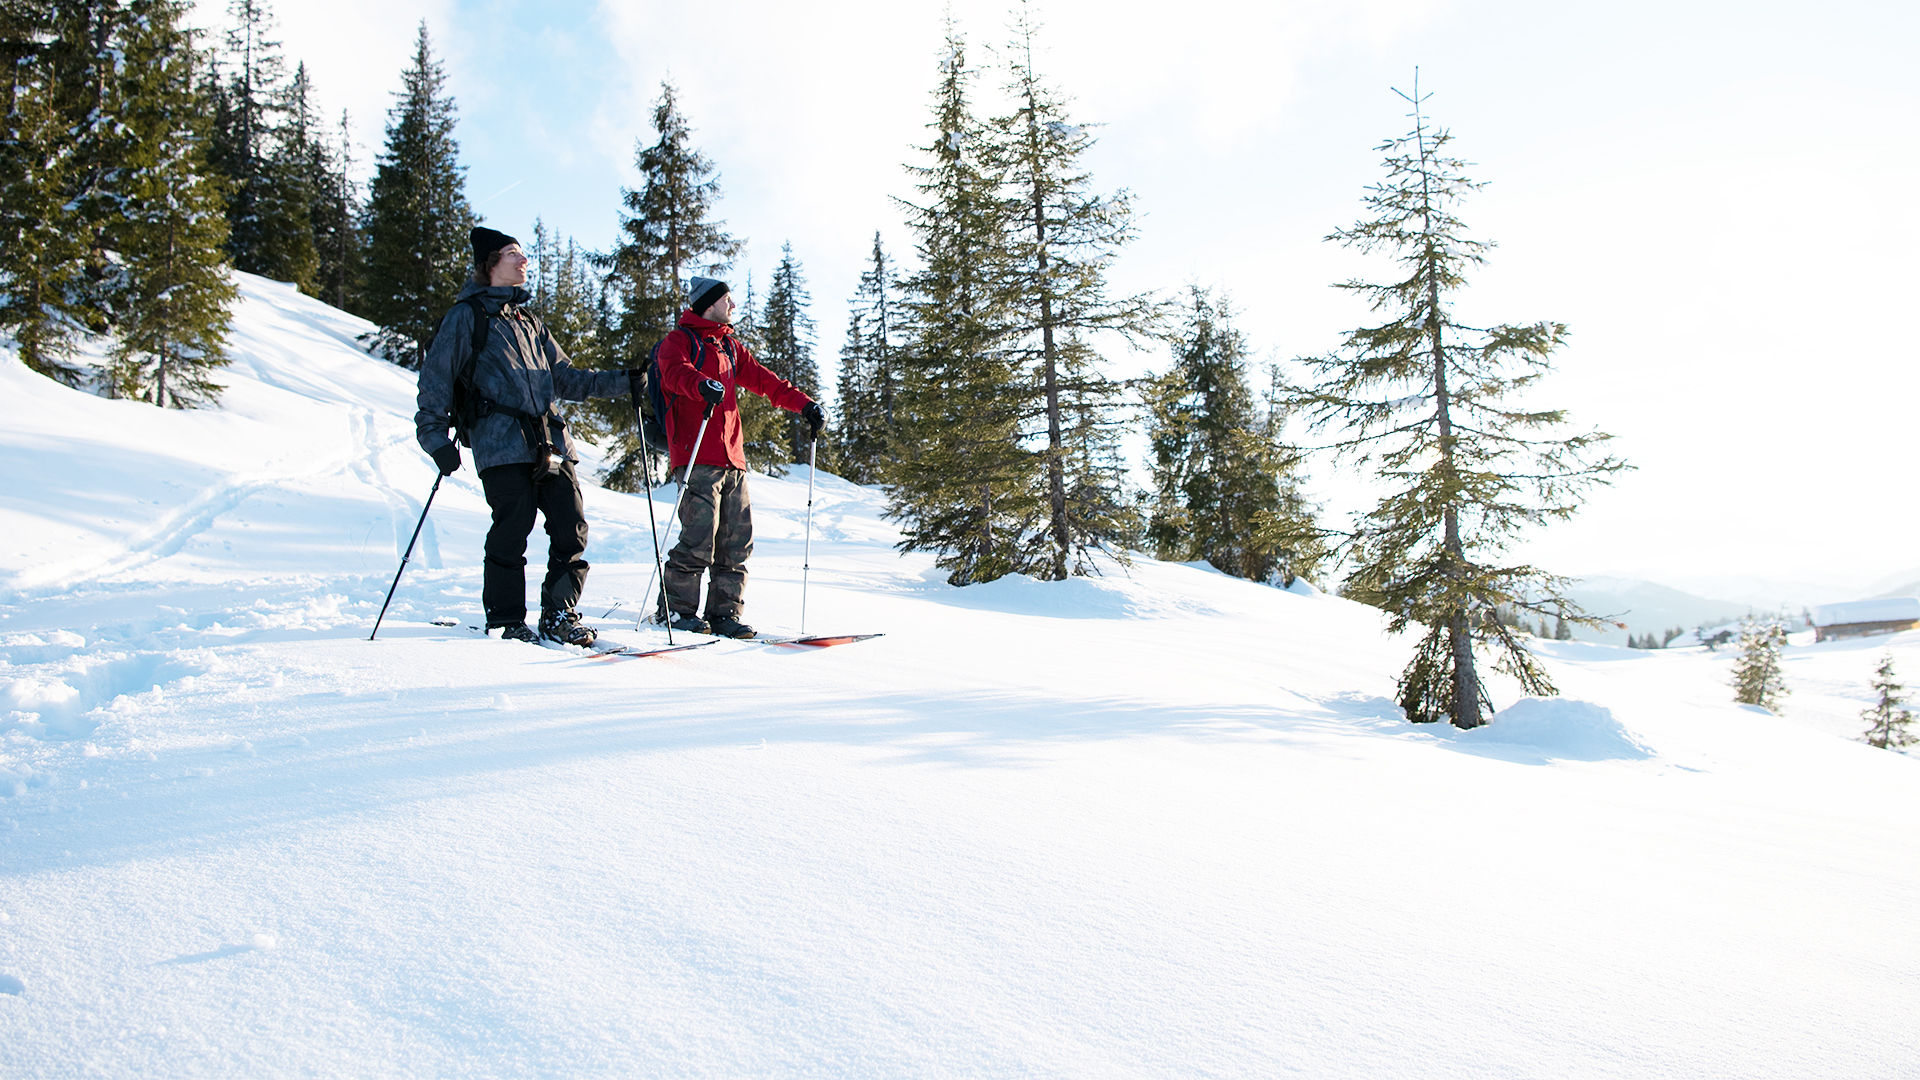 Two splitboarders standing on the mountain